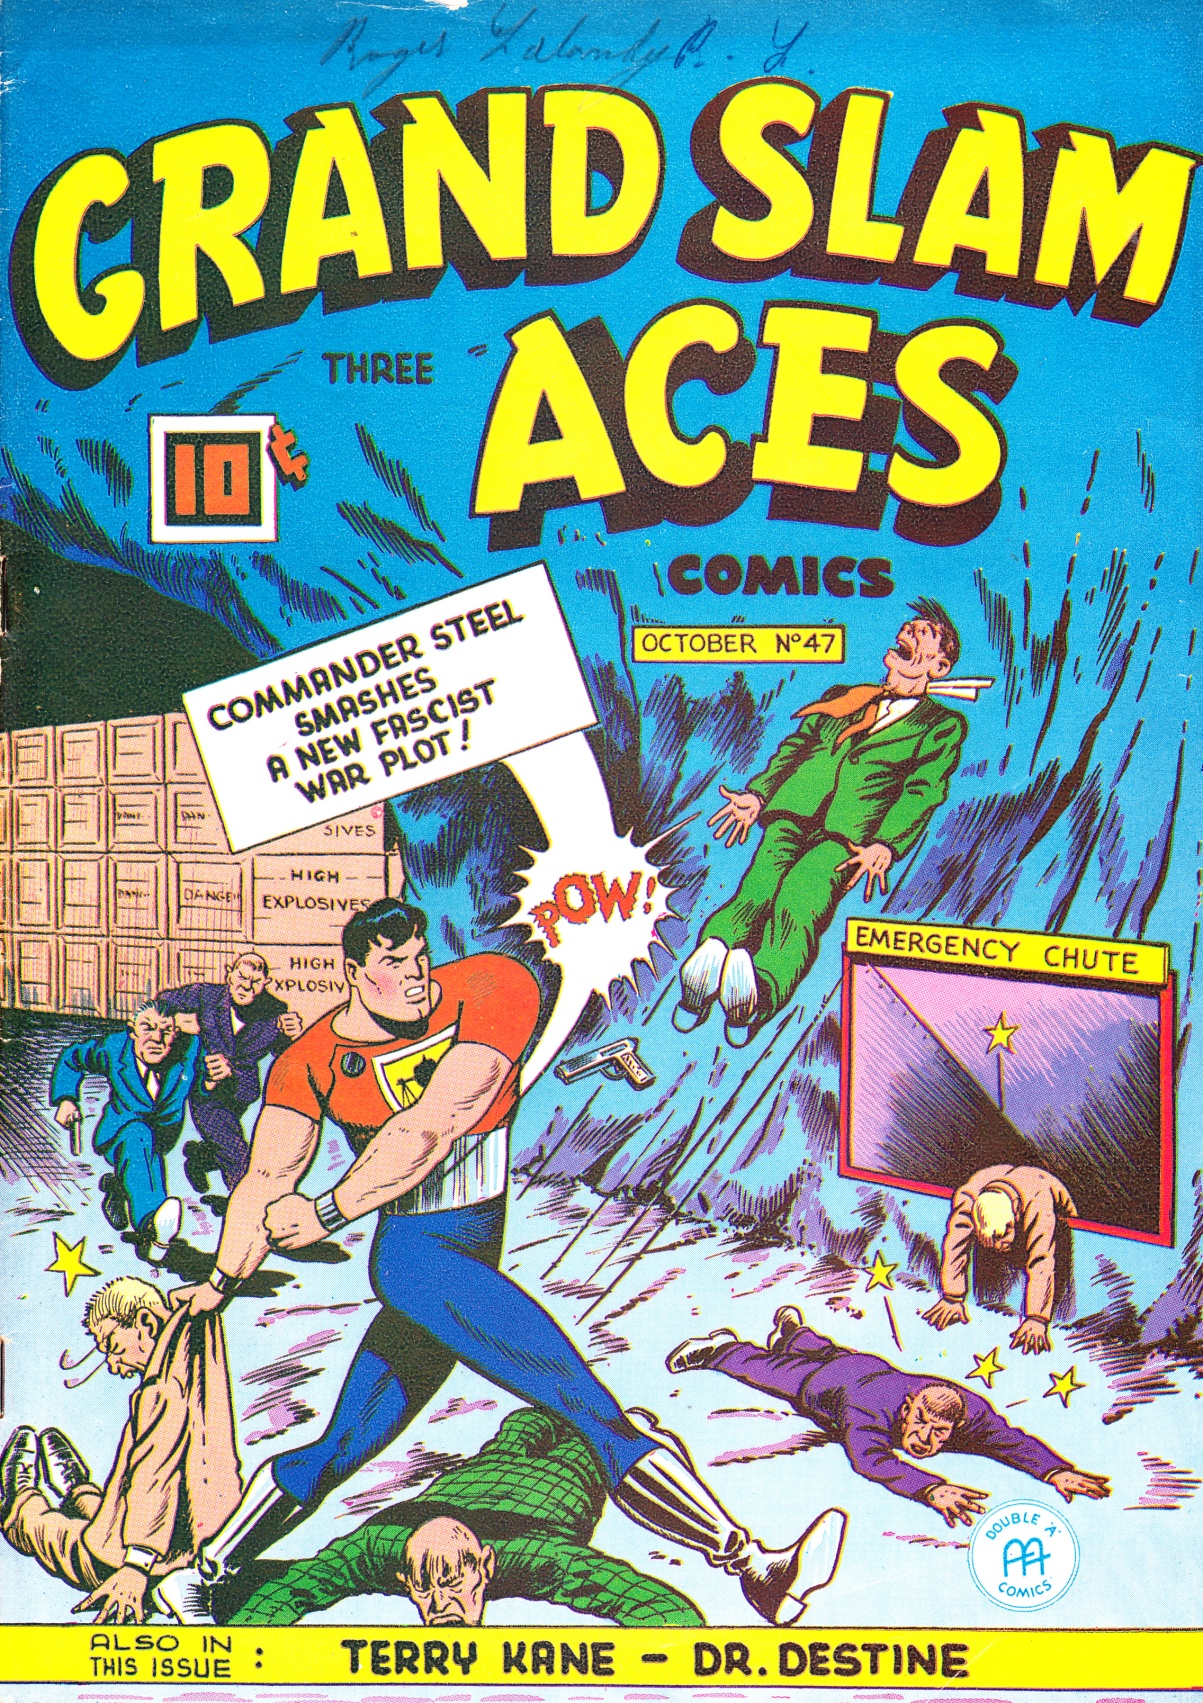 C:\Users\Robert\Documents\CARTOONING ILLUSTRATION ANIMATION\IMAGE CARTOON\IMAGE CARTOON C\COMMANDER STEEL Grand Slam 3 Aces IV-47 Oct 1945 fc.jpg